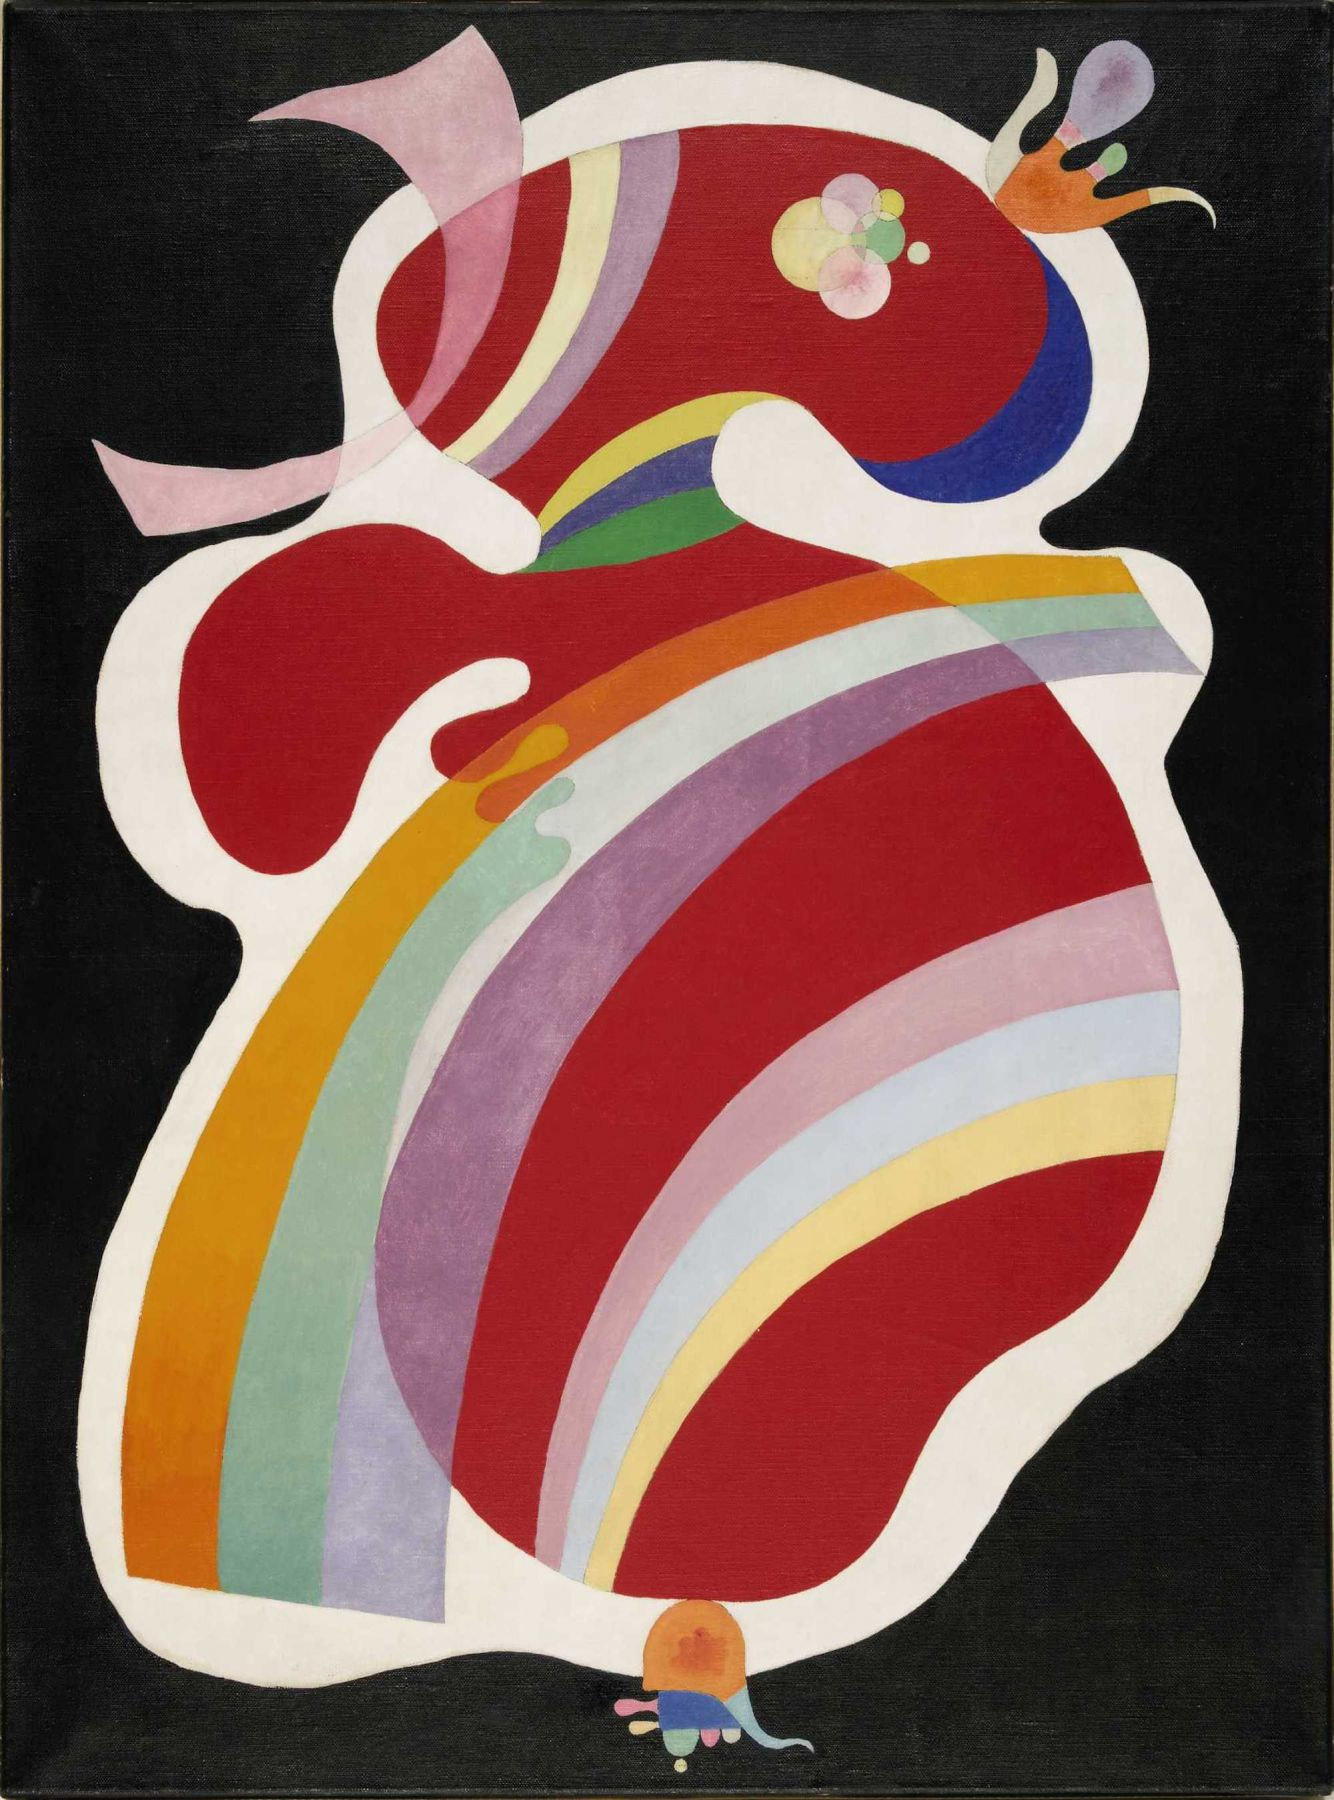 Wassily Kandinsky, La Forme Rouge (Die Rote Form) (Red Form), 1938. Oil on canvas 82 x 60 cm. (32.3 x 23.6 in.) ©Helly Nahmad Gallery NY